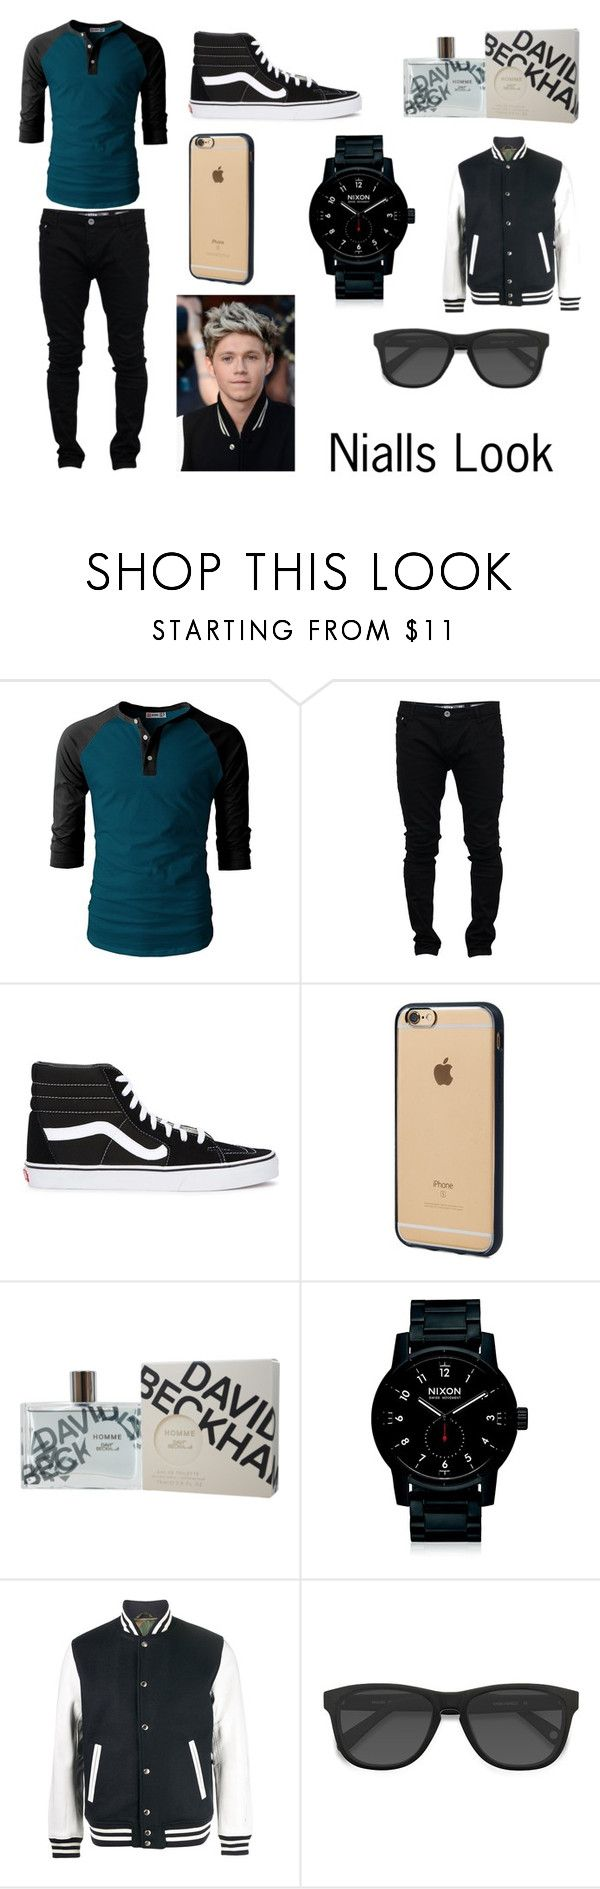 """Nialls look"" by courts-horan13 on Polyvore featuring Soul Star, Vans, Incase, David Beckham, Nixon, Sophnet., men's fashion and menswear"